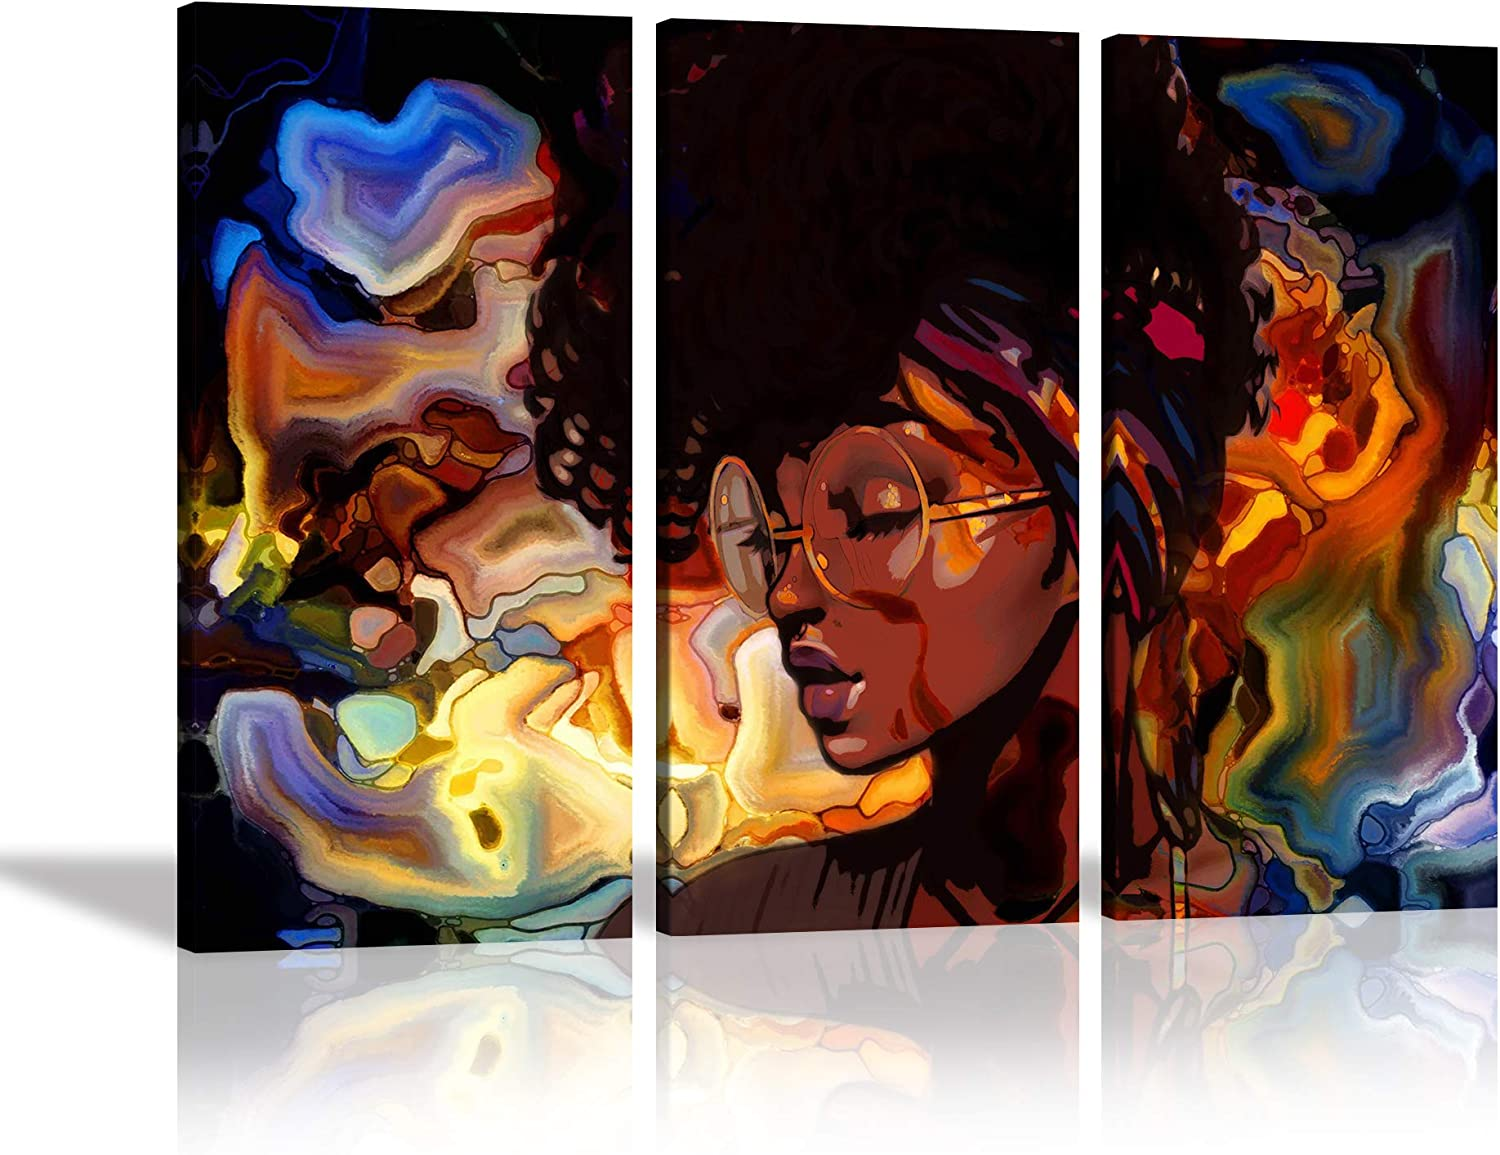 African American Women Canvas Mural Art Abstract Graffiti Hippie Painting Poster Decoration Bedroom Living Room Ofice Home Decoration Frame Ready to Hang